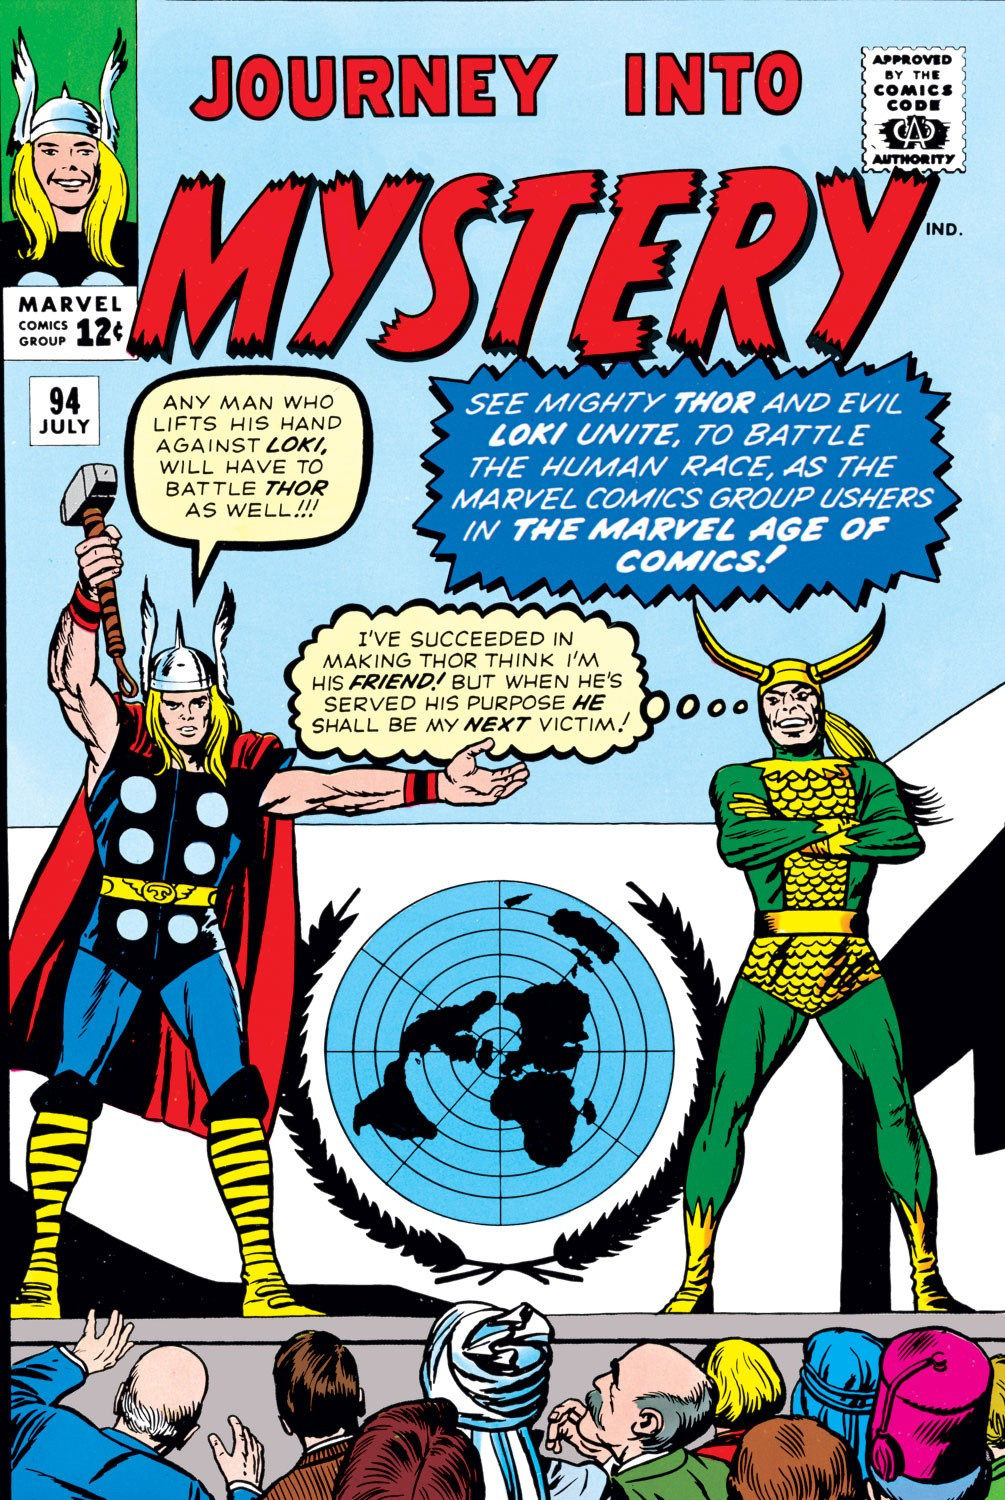 Journey into Mystery Vol 1 94 | Marvel Database | FANDOM powered by ...